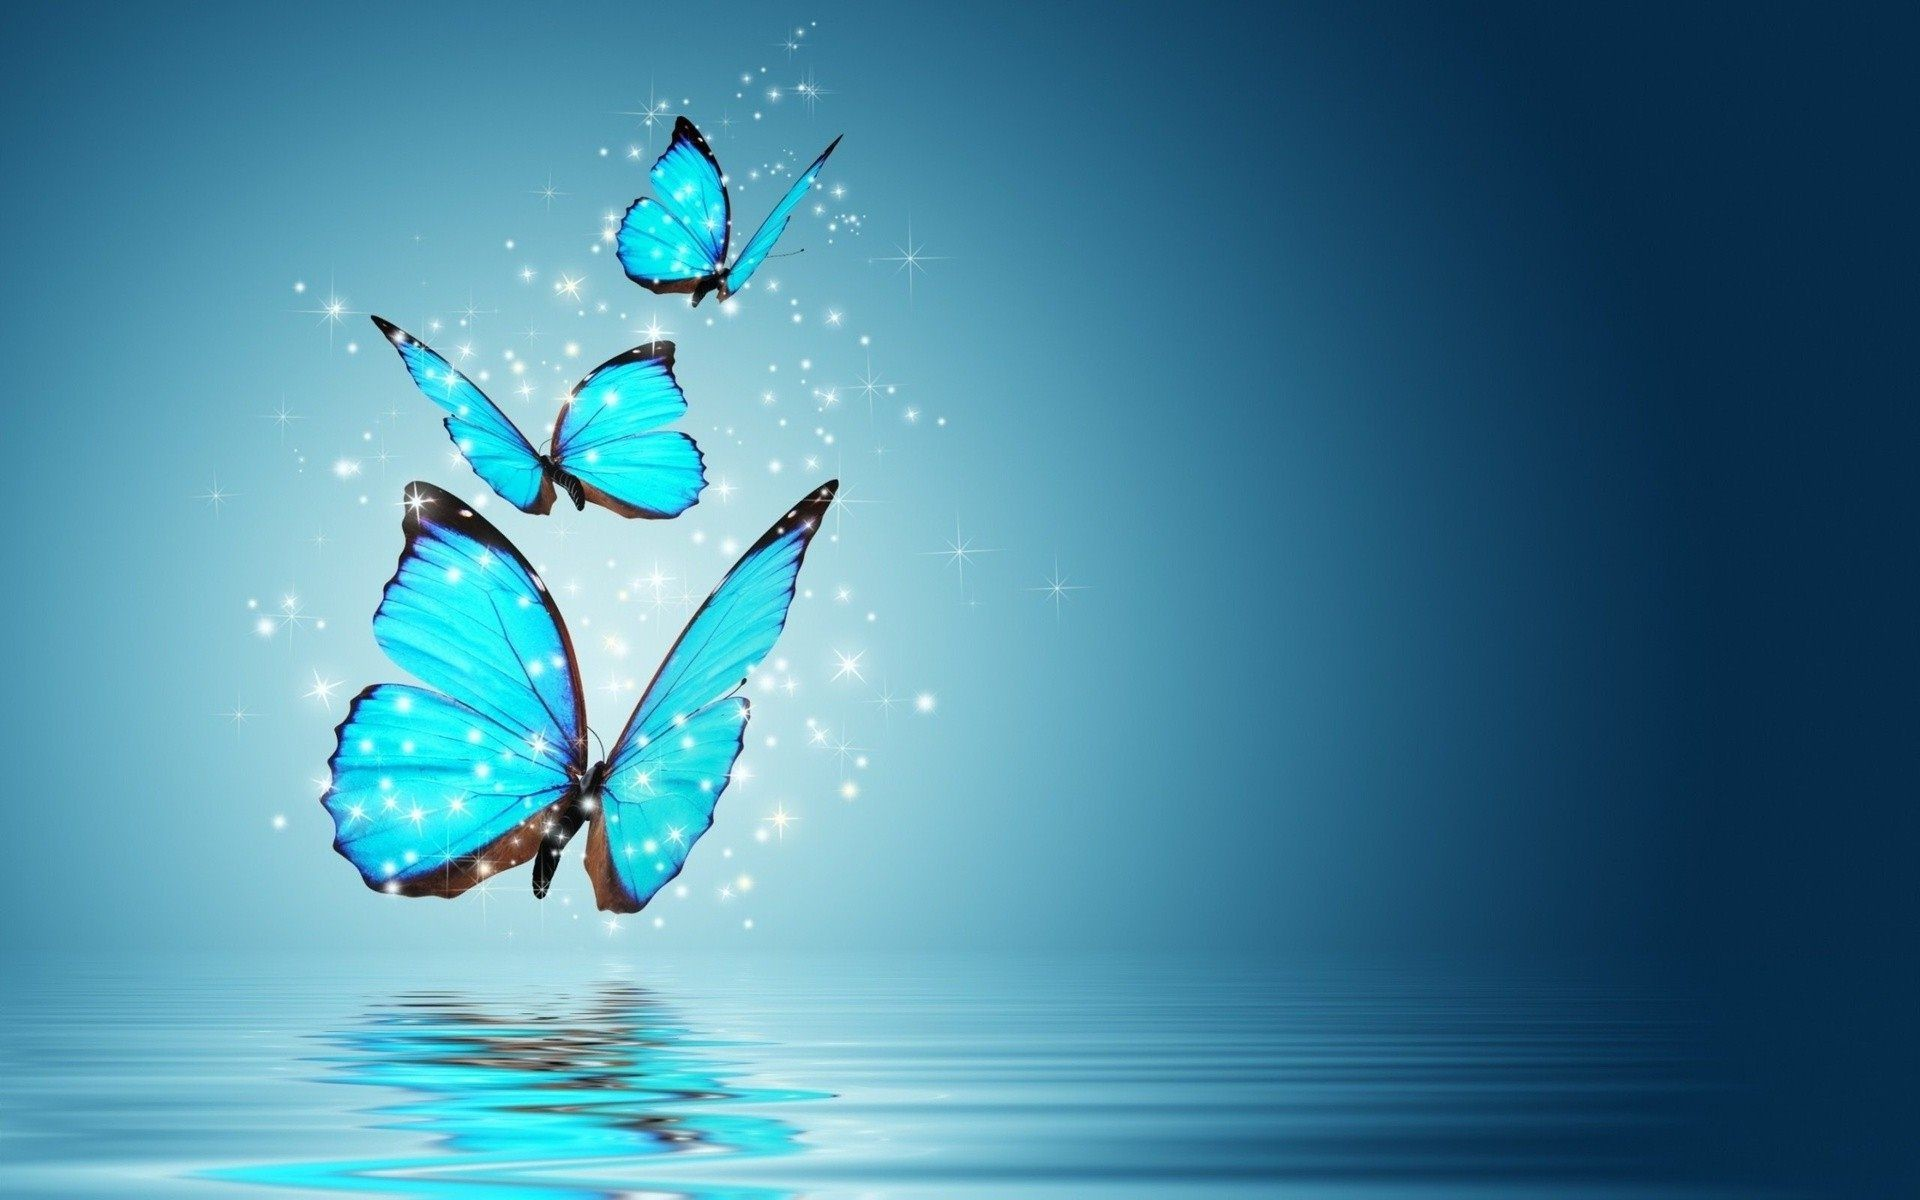 1920x1200 butterfly wallpaper 34C | Hd Wallpaper, Blue Wallpaper, Abstract Wallpaper,  Desktop Wallpaper, Pc Wallpaper, | Pinterest | Wallpaper pc, Blue wallpapers  and ...